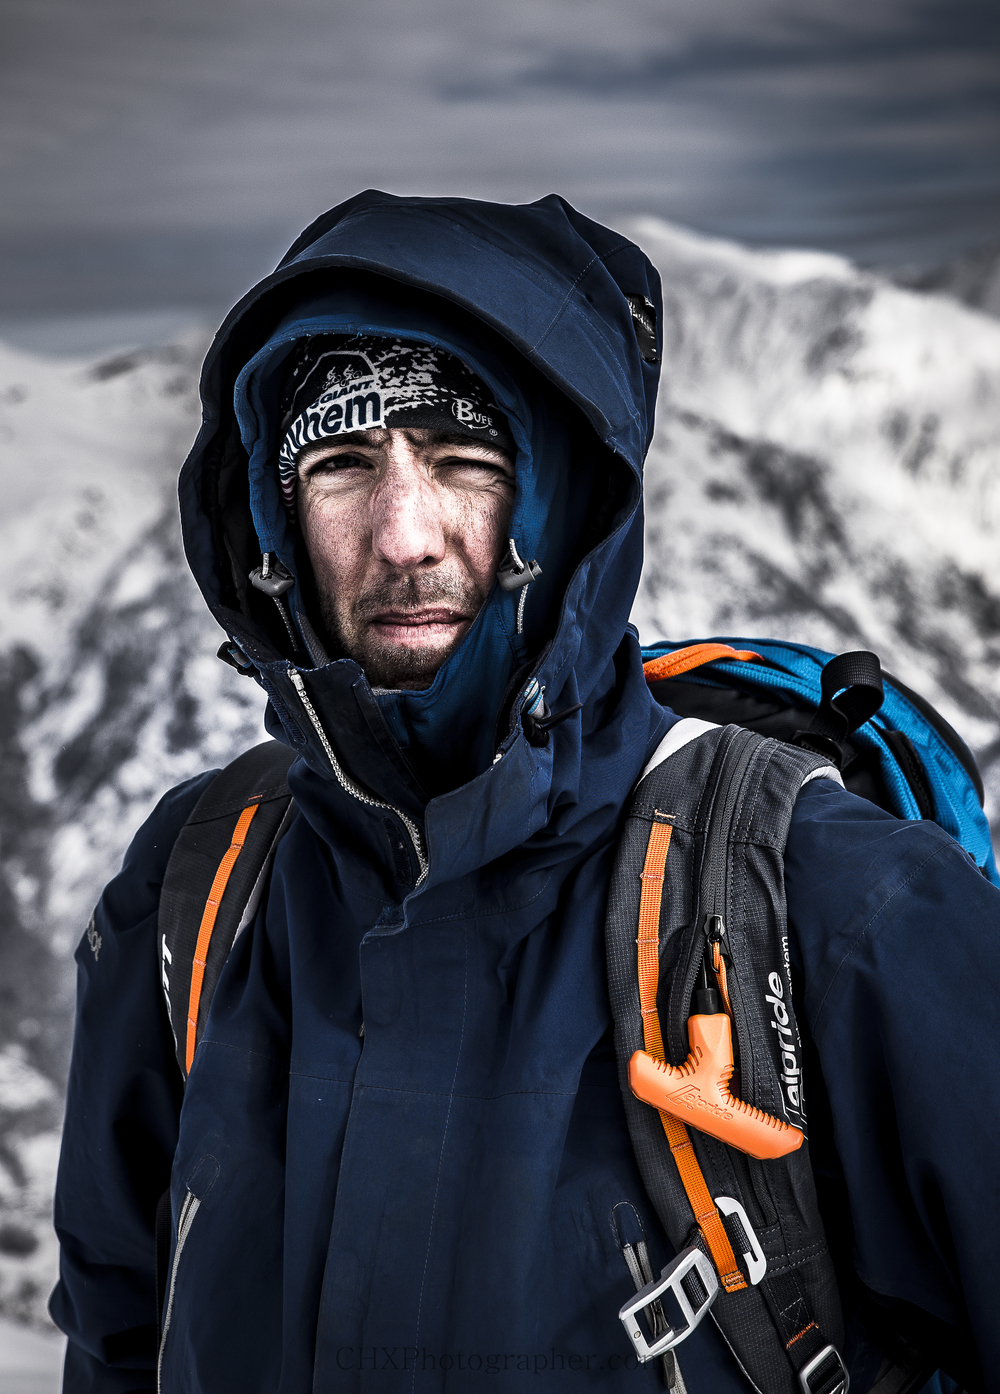 A cold & windy day on the mountain with Oli Carr